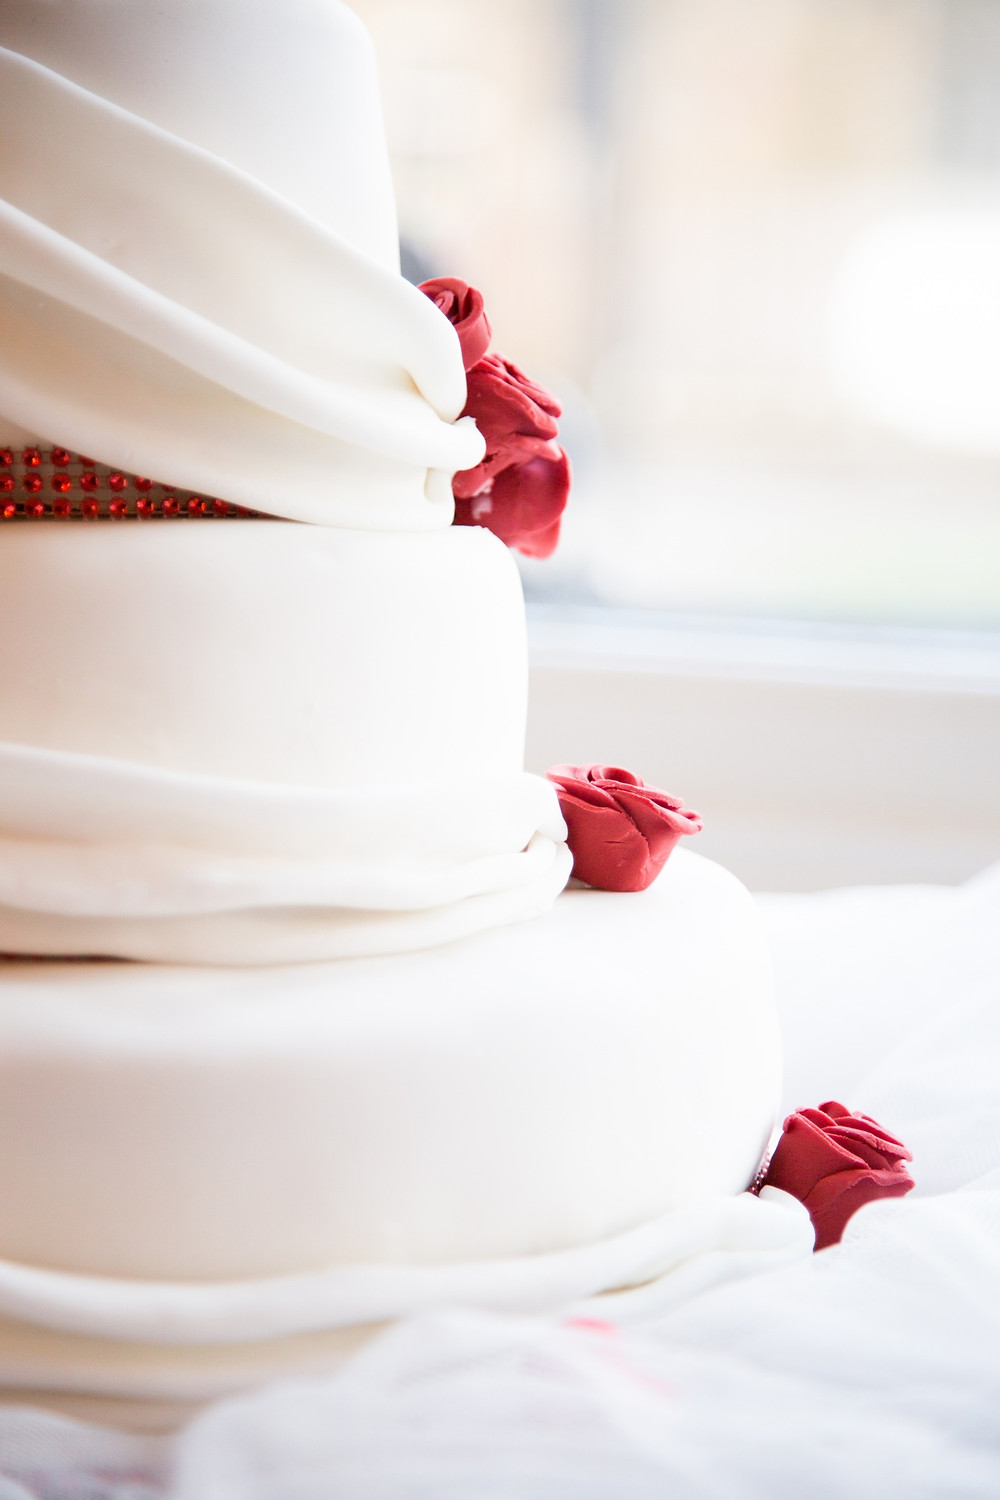 From Queen Victoria to Cake Boss: The History, Evolution, and Artistic Variety of The Wedding Cake